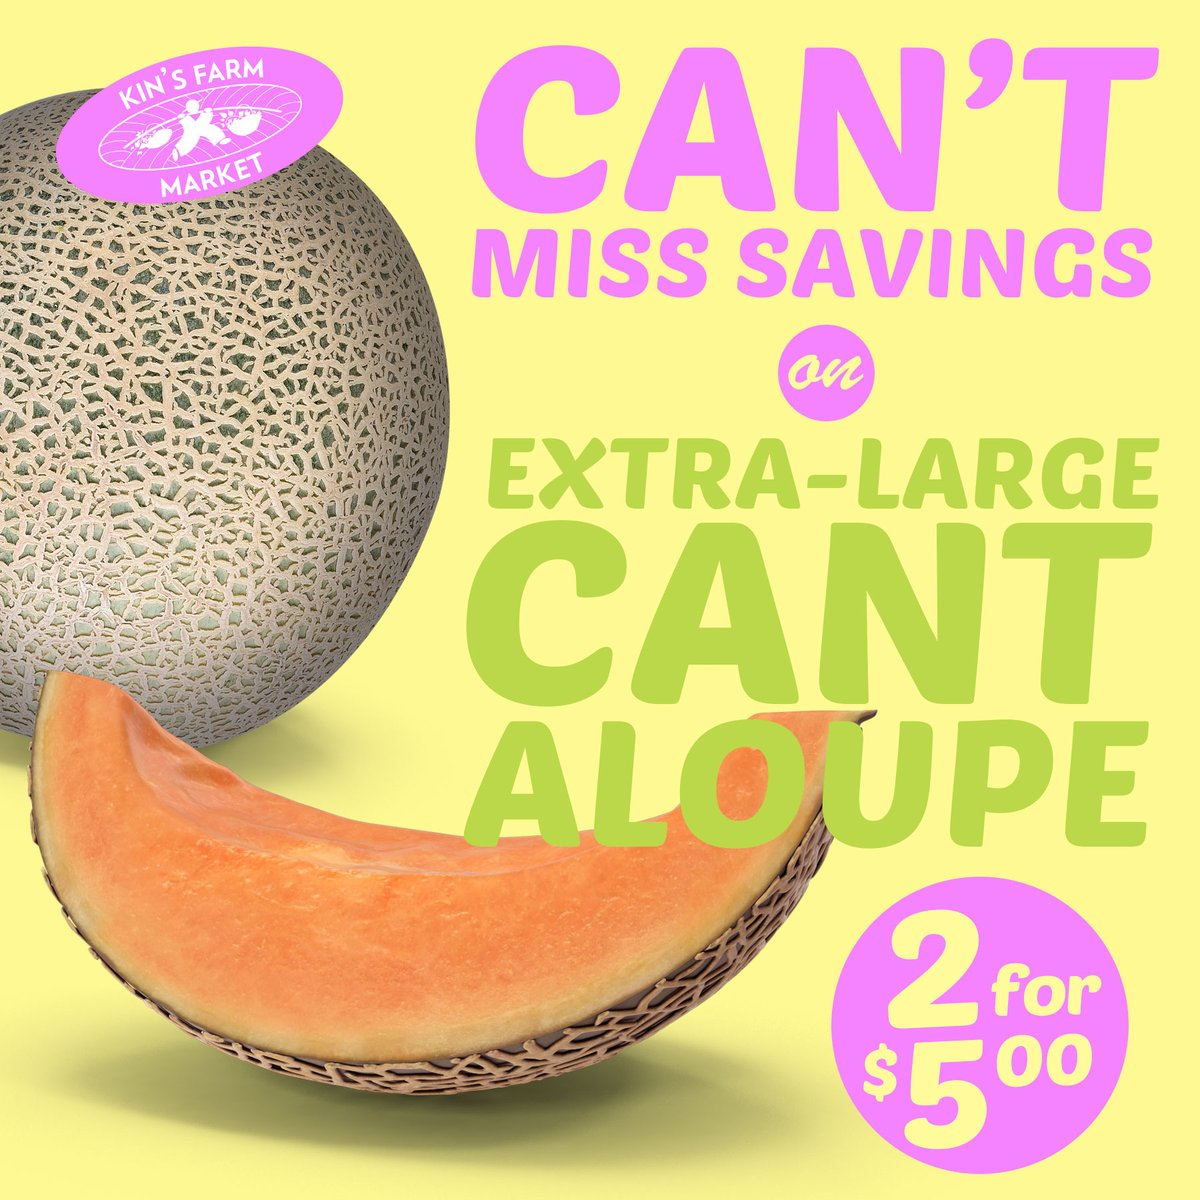 Kin S Farm Market On Twitter Kin S Daily Deal Right Now We Re Featuring Some Extra Large Savings On Our Extralargecantaloupe Until End Of Day Tomorrow Aug 20 They Re Just 2 For 5 Any Way Последние твиты от cantaloupe   freelance b2b copywriter (@cantaloupeuk). twitter